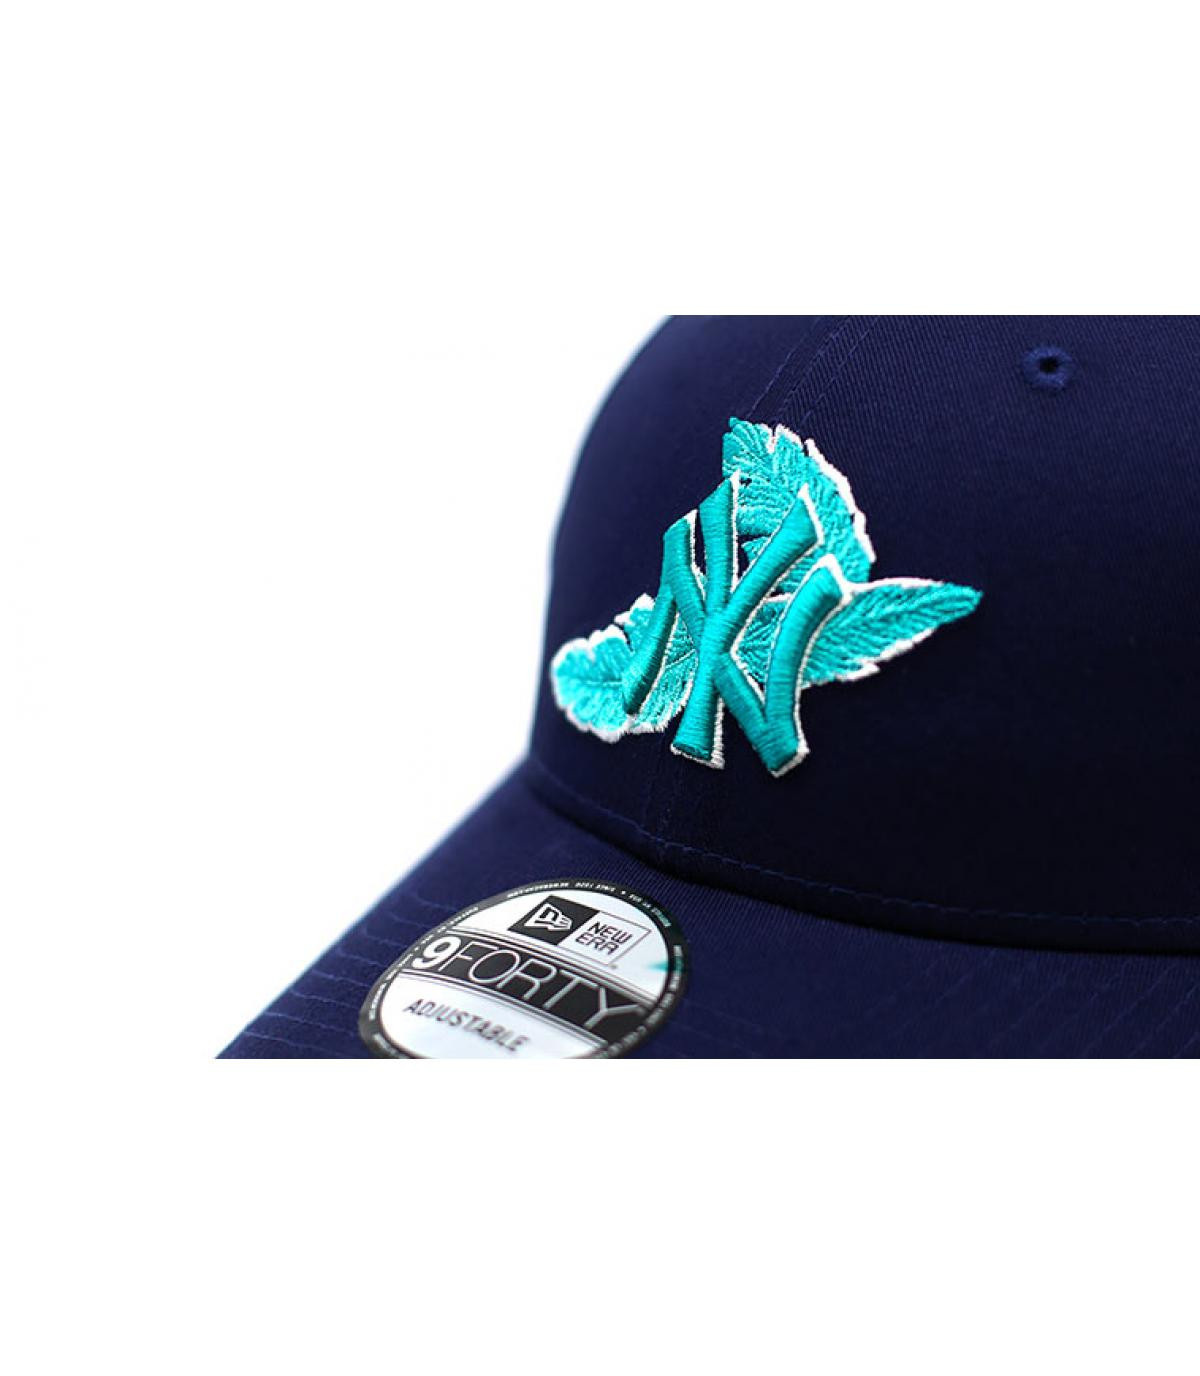 Details MLB Light Weight NY 9Forty nay teal - afbeeling 3